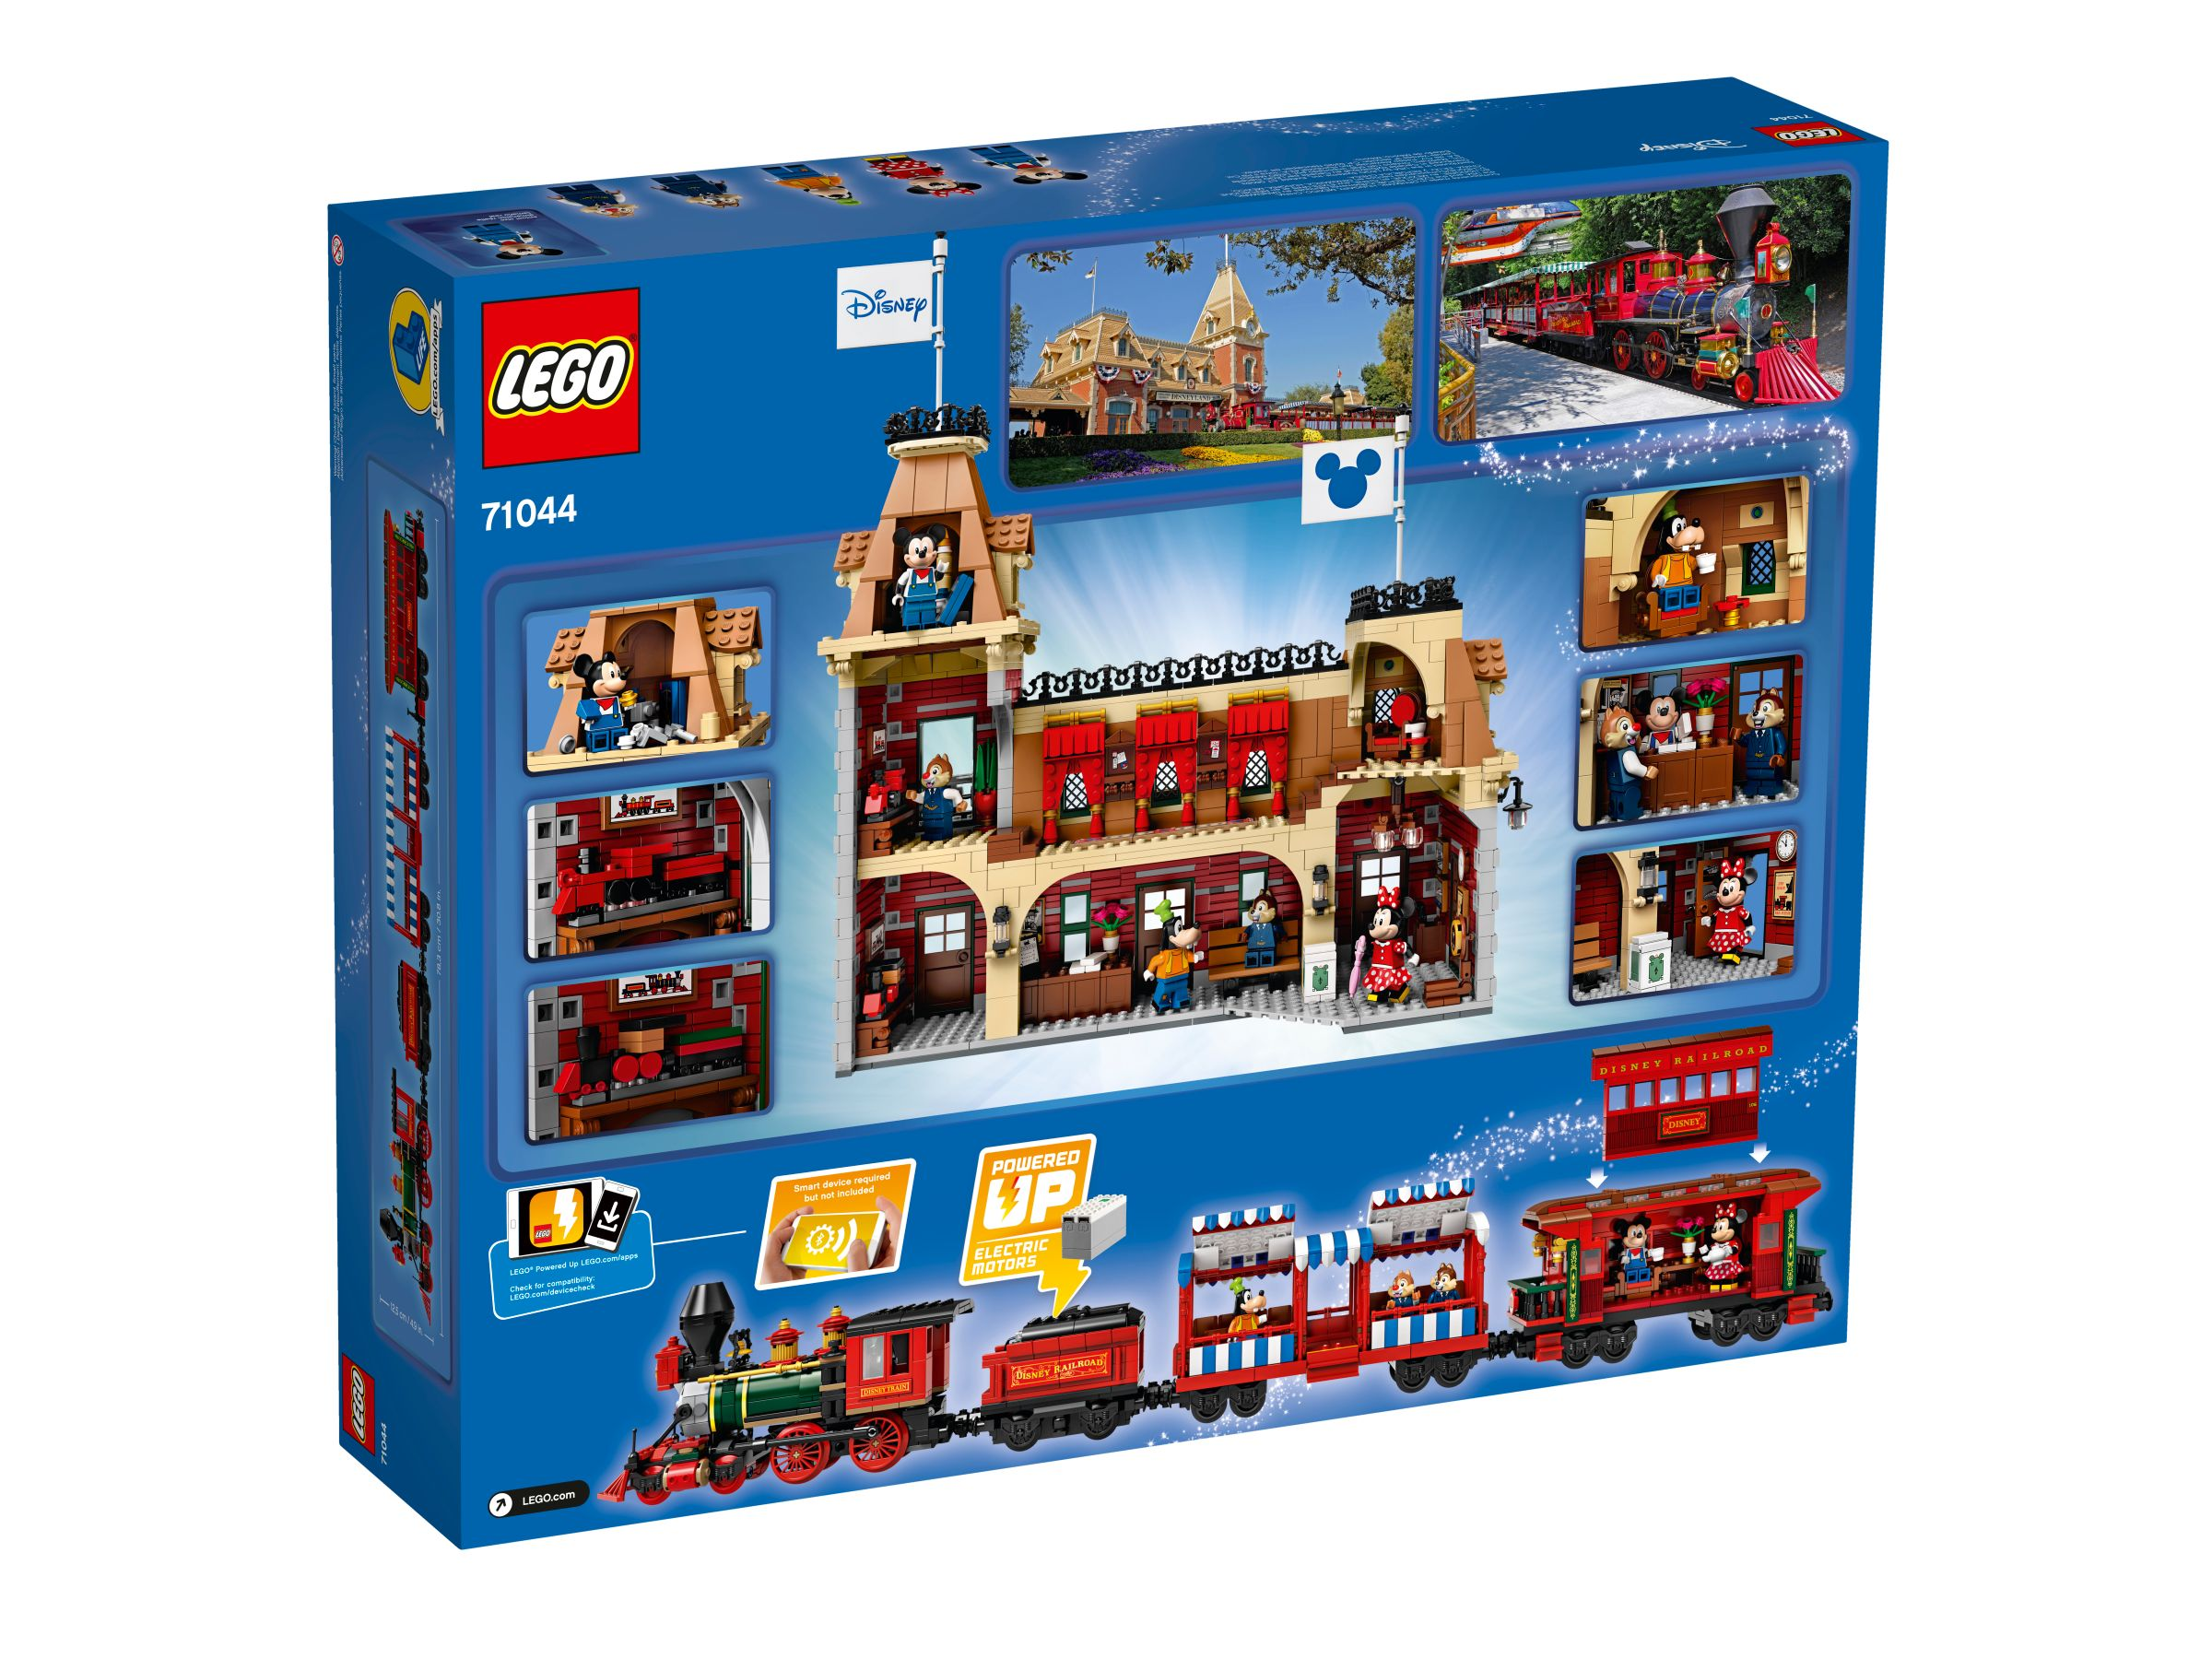 LEGO Advanced Models 71044 Disney Zug mit Bahnhof LEGO_71044_alt9.jpg